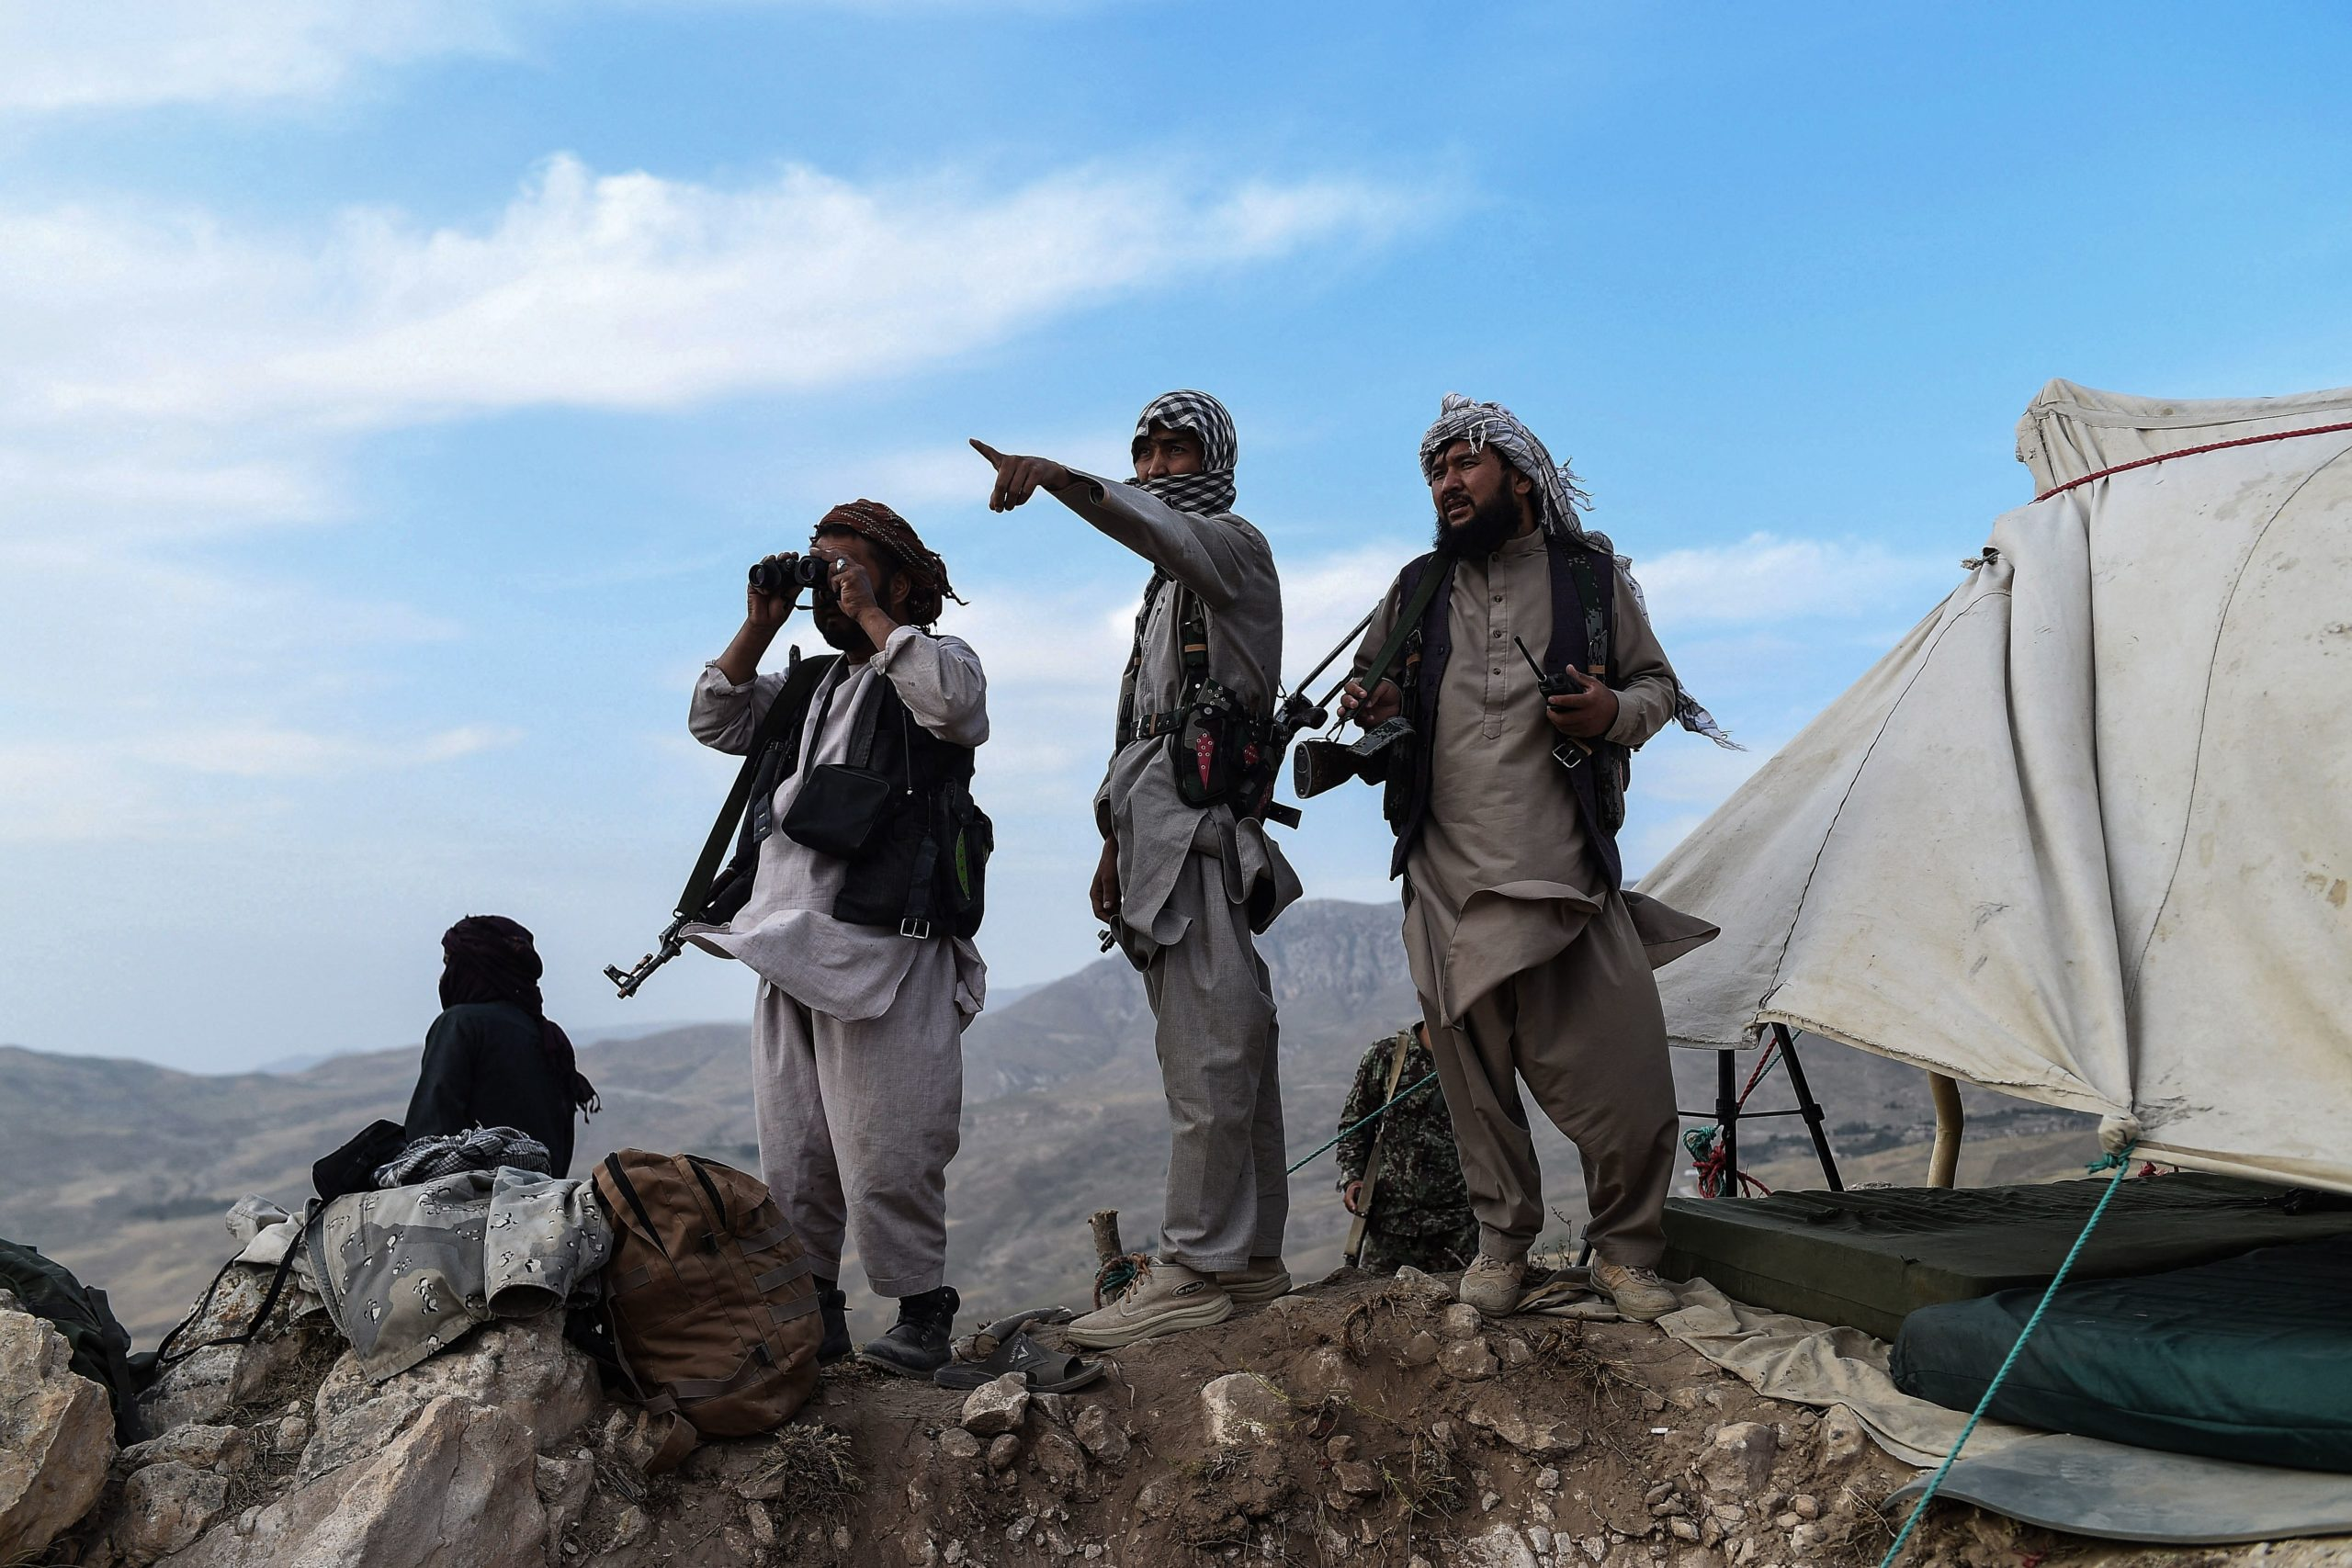 In this picture taken on July 15, 2021, Afghan militia fighters keep a watch at an outpost against Taliban insurgents at Charkint district in Balkh Province. (Photo by FARSHAD USYAN / AFP) (Photo by FARSHAD USYAN/AFP via Getty Images)